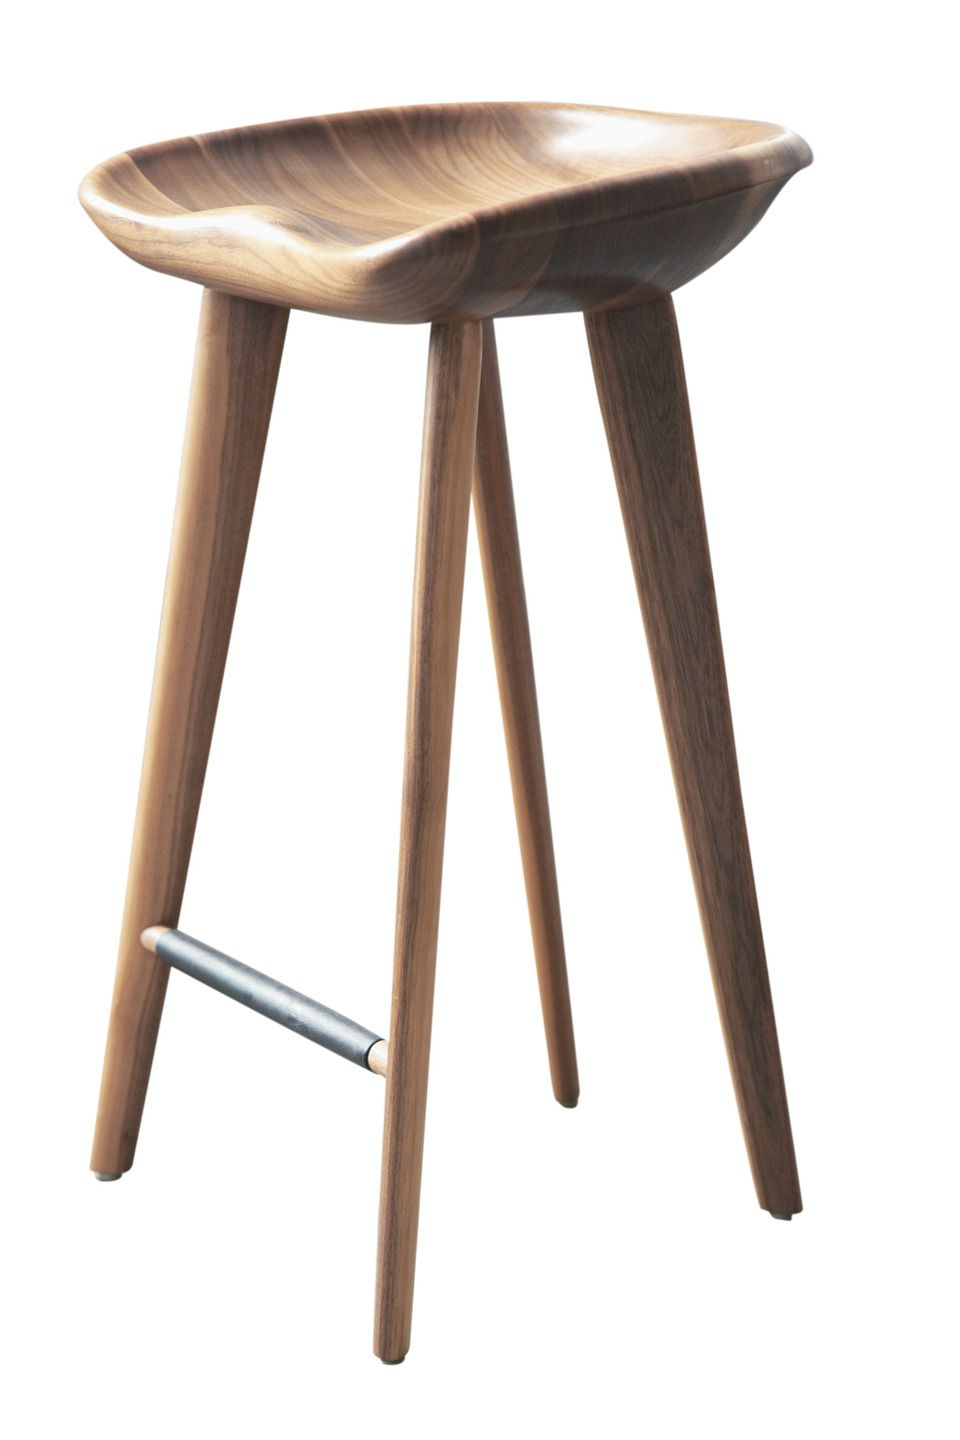 Dering Hall Buy Tractor Stools Stools Seating